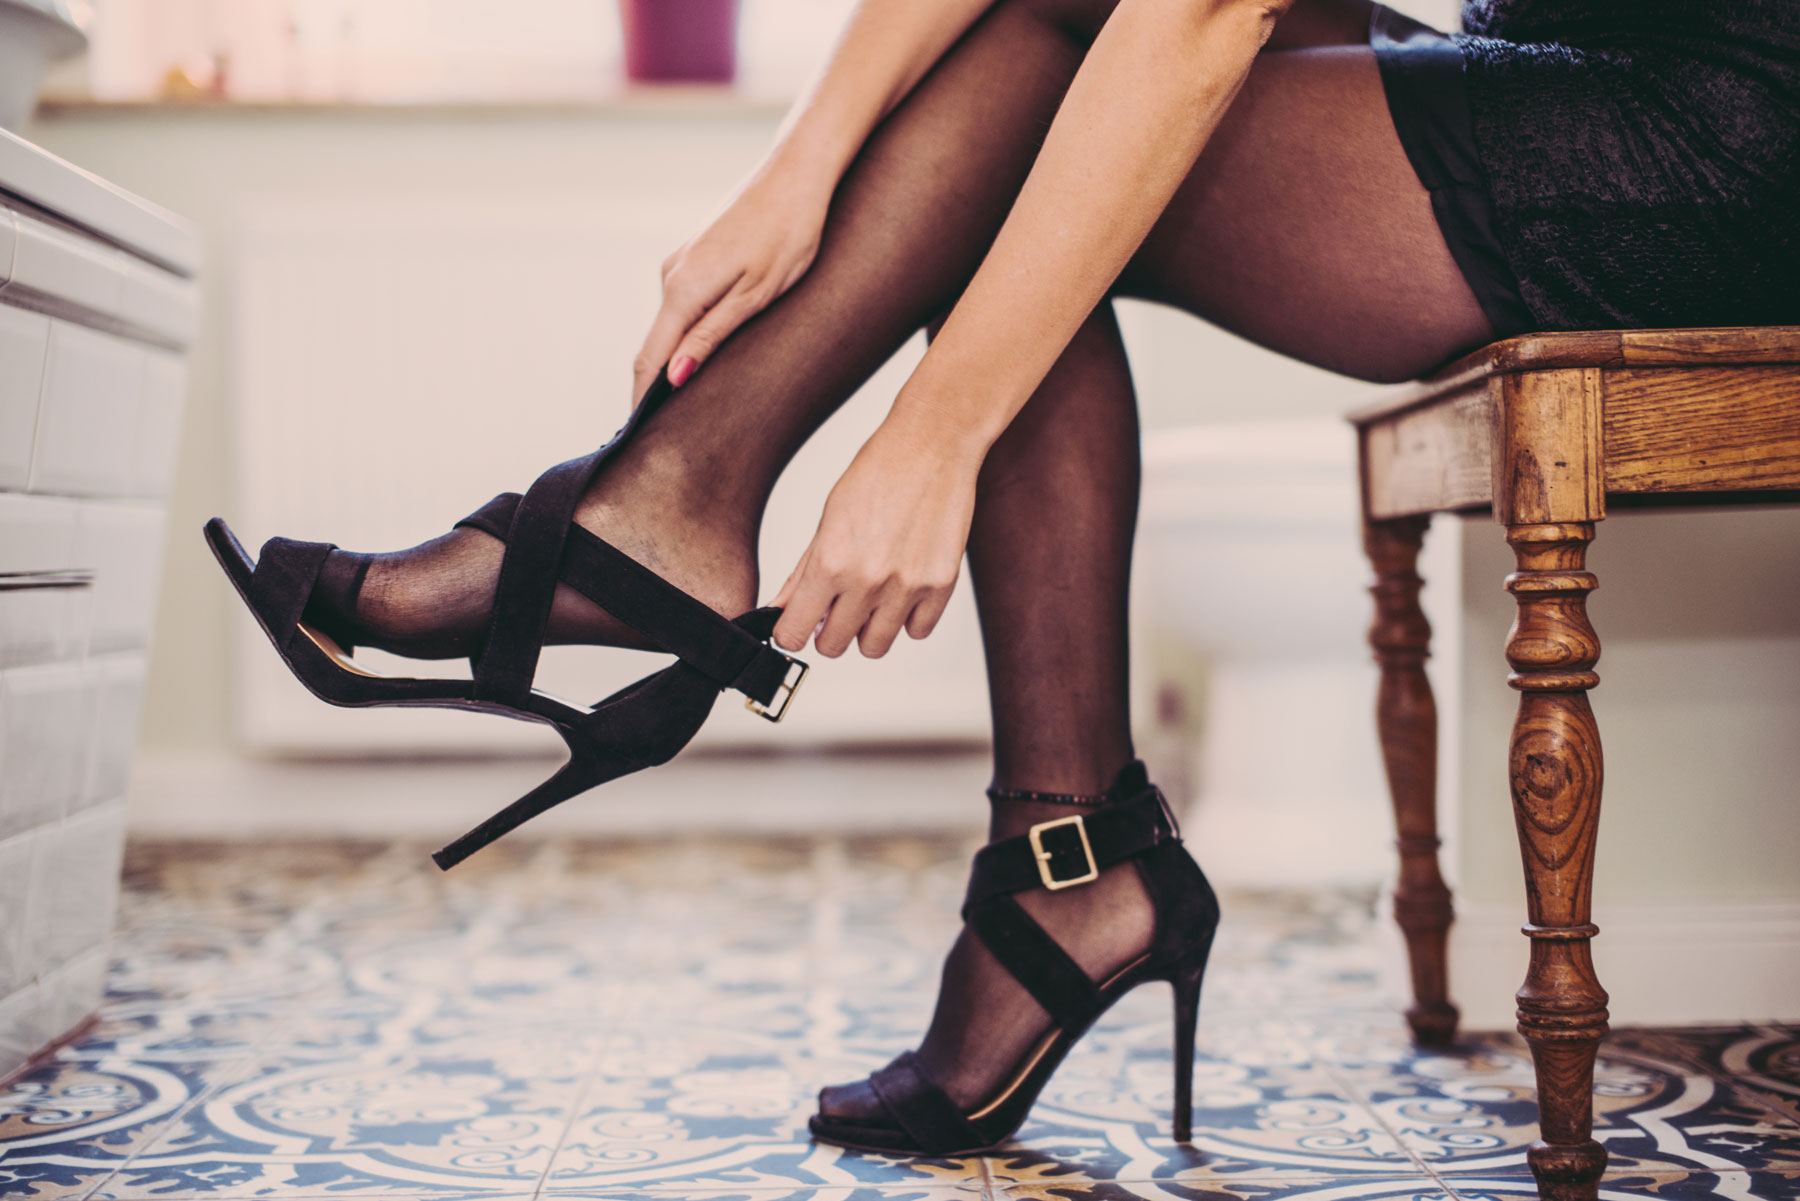 How to make shoes more comfortable: tips and tricks (woman putting on high heels)